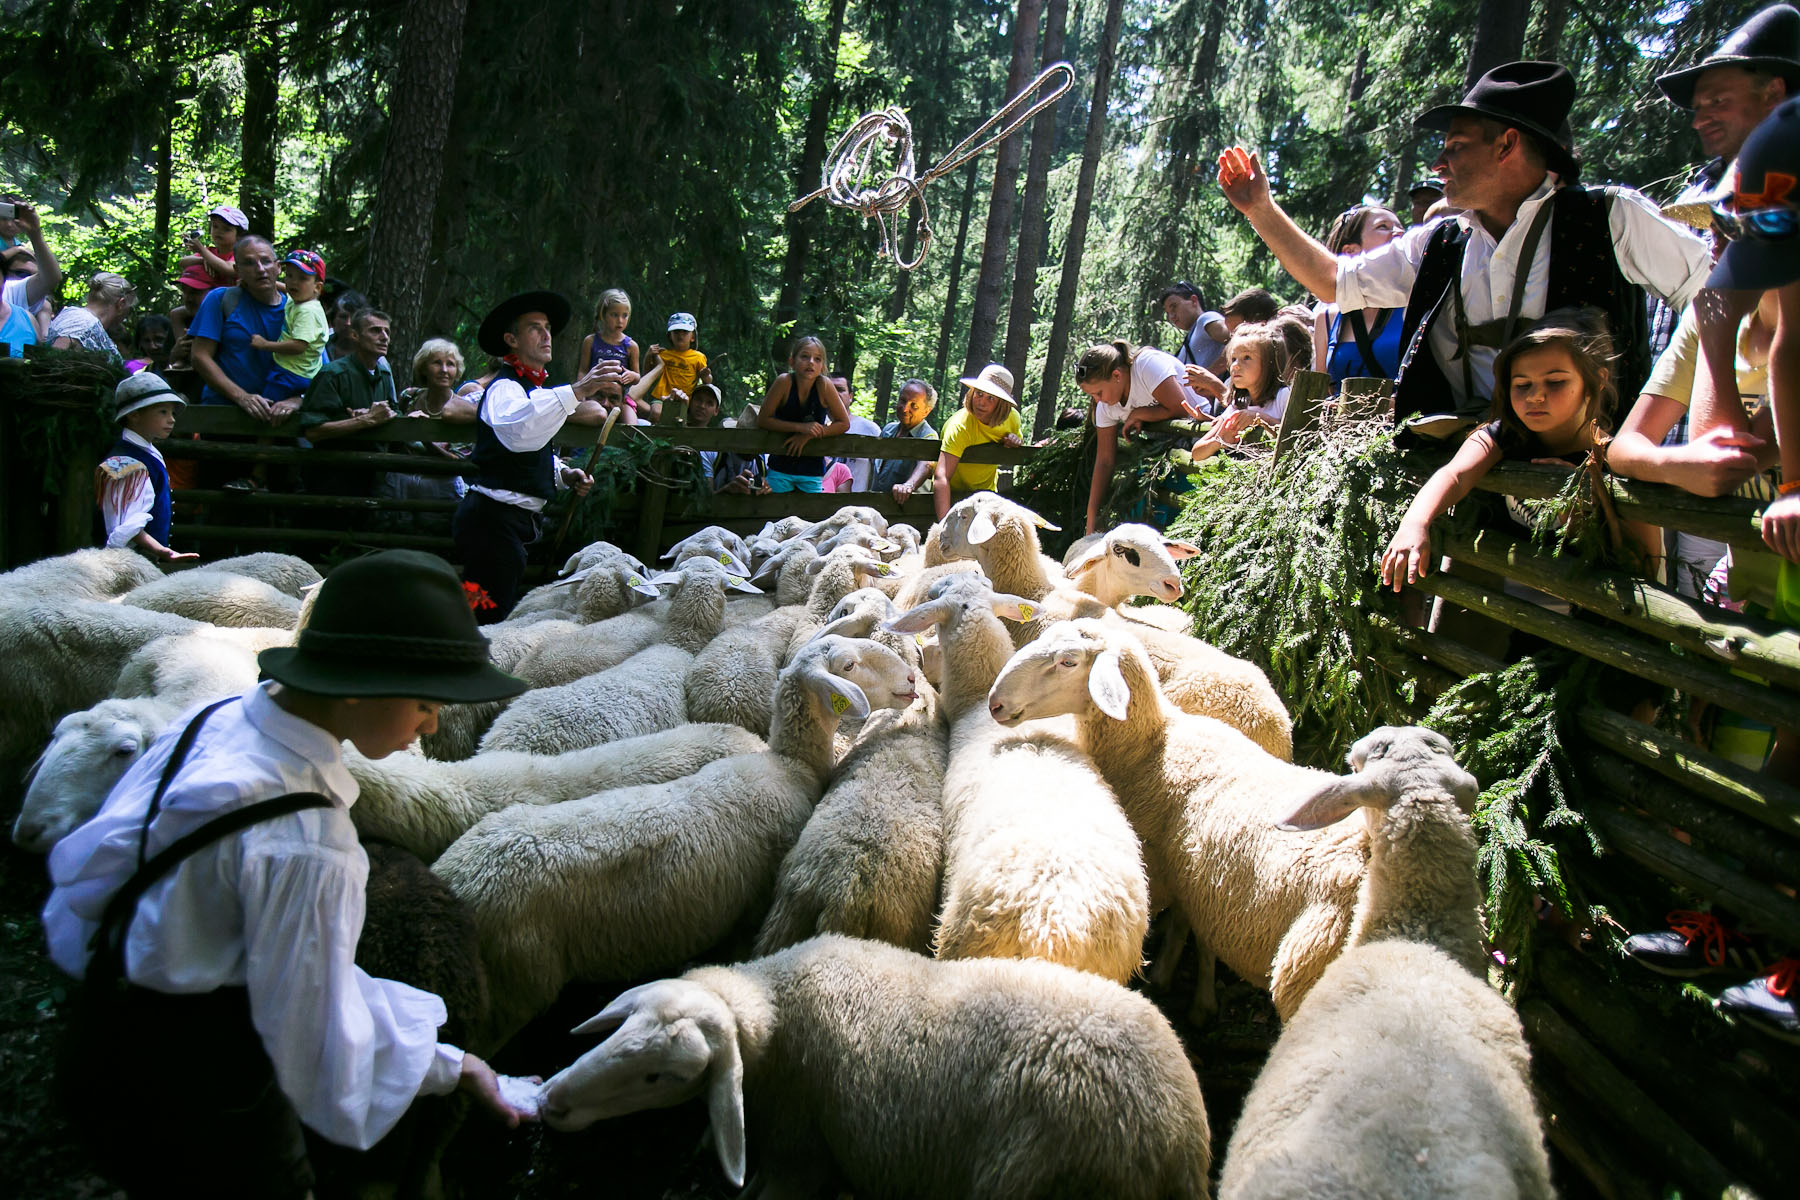 Shepherds bring the sheep to the 57th annual Shepherd\'s Ball in Jezersko, Slovenia.